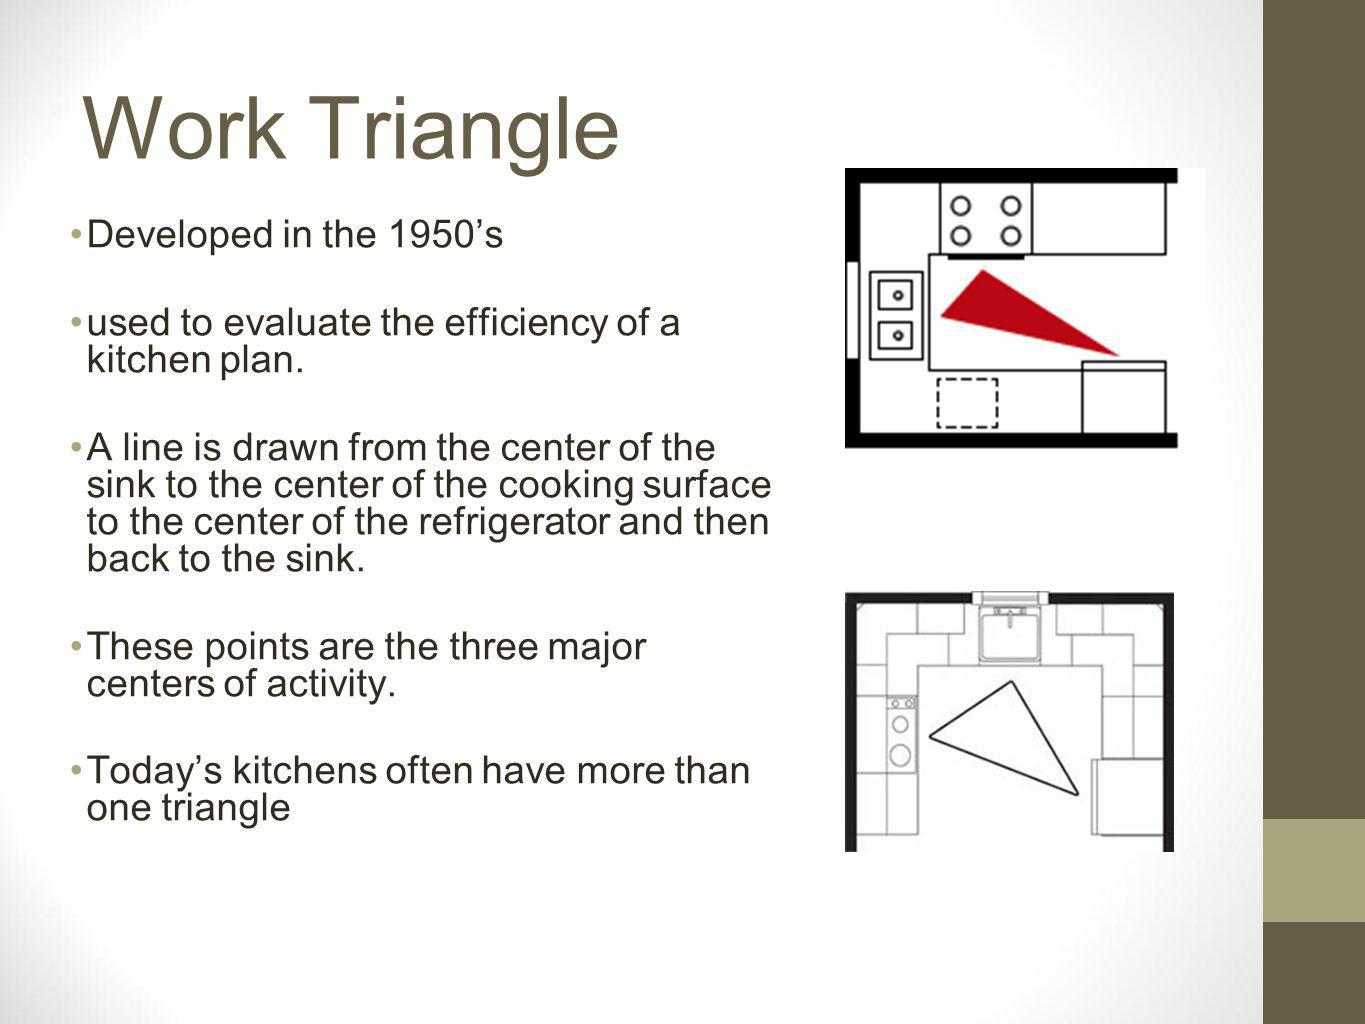 Work Triangle Developed in the 1950s used to evaluate the efficiency of a kitchen plan.